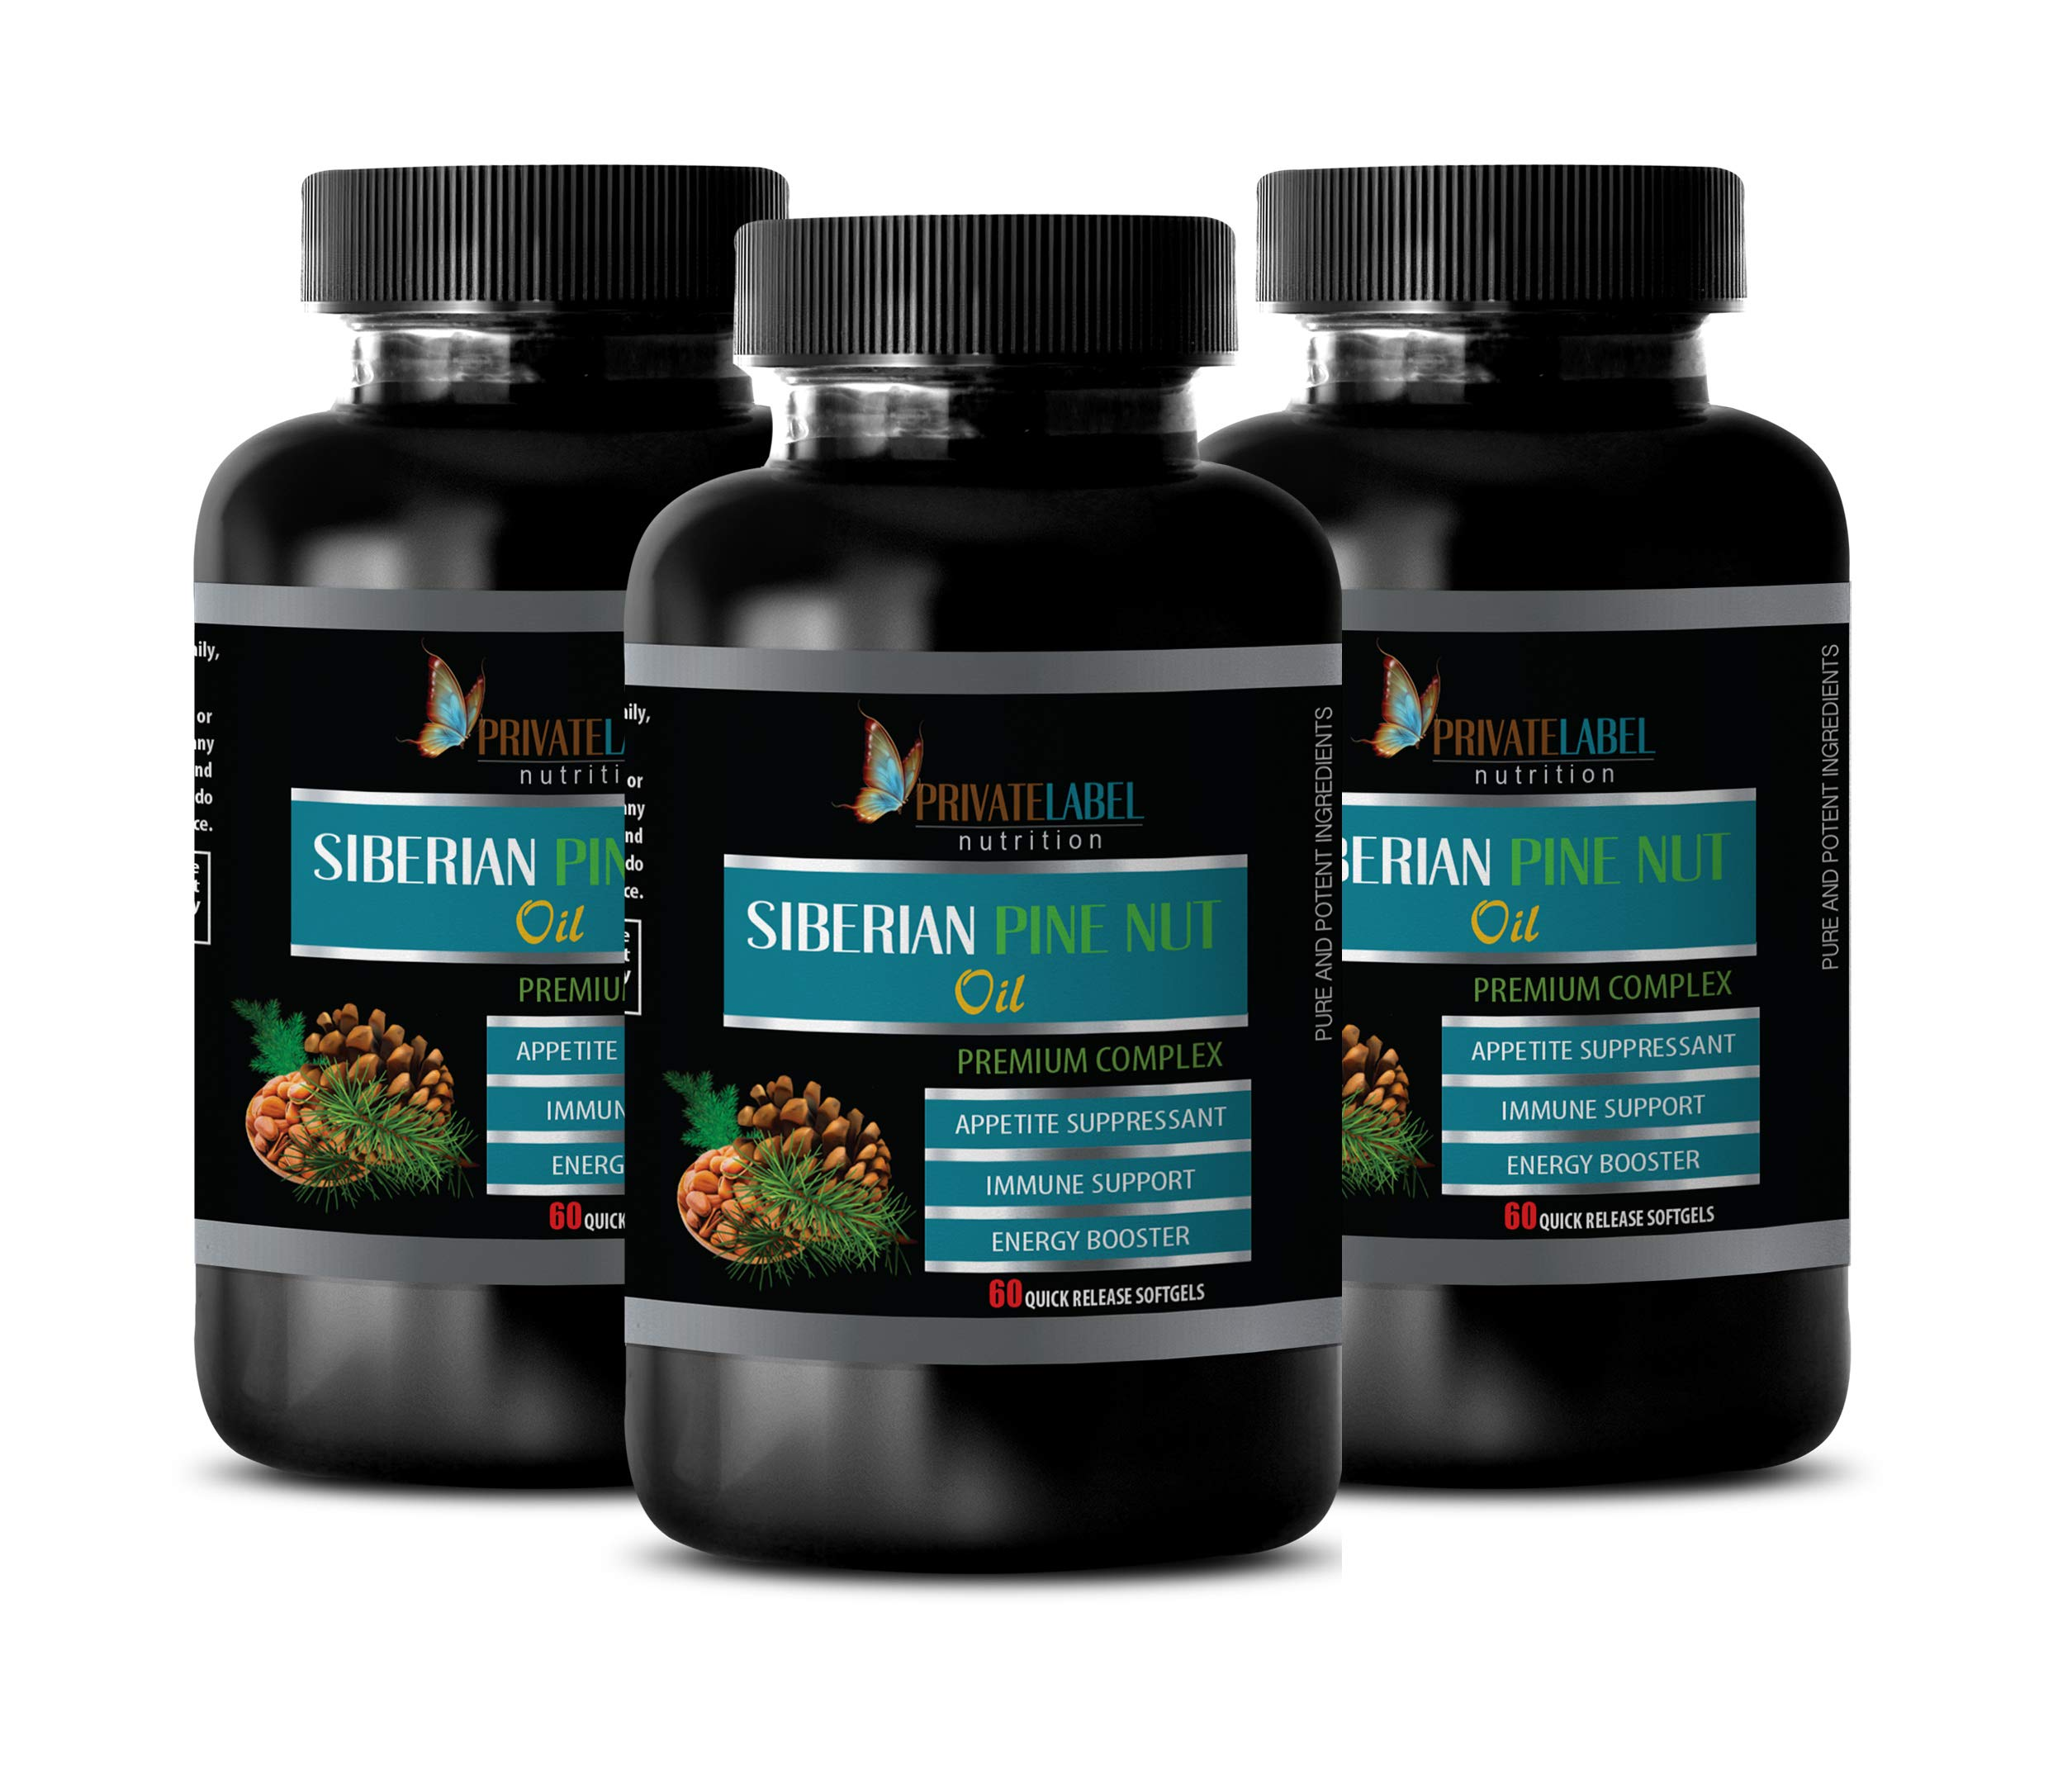 Brain Health Formula - Siberian Pine NUT Oil - Premium Complex - Eye Vision Supplement - 3 Bottles 180 Softgels by PRIVATE LABEL LLC